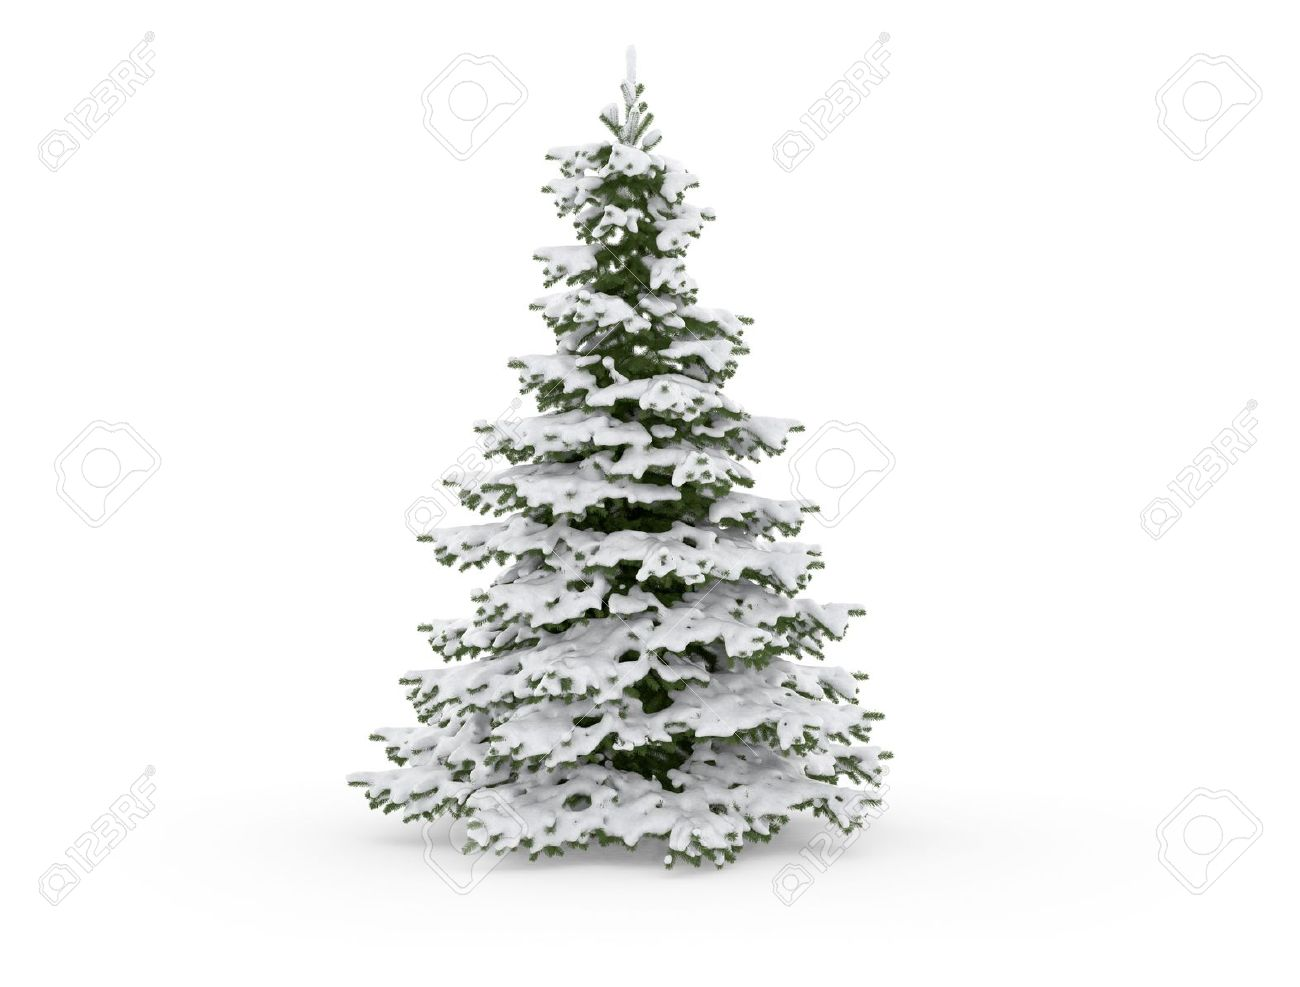 Christmas Tree Snow Black And White Clipart.